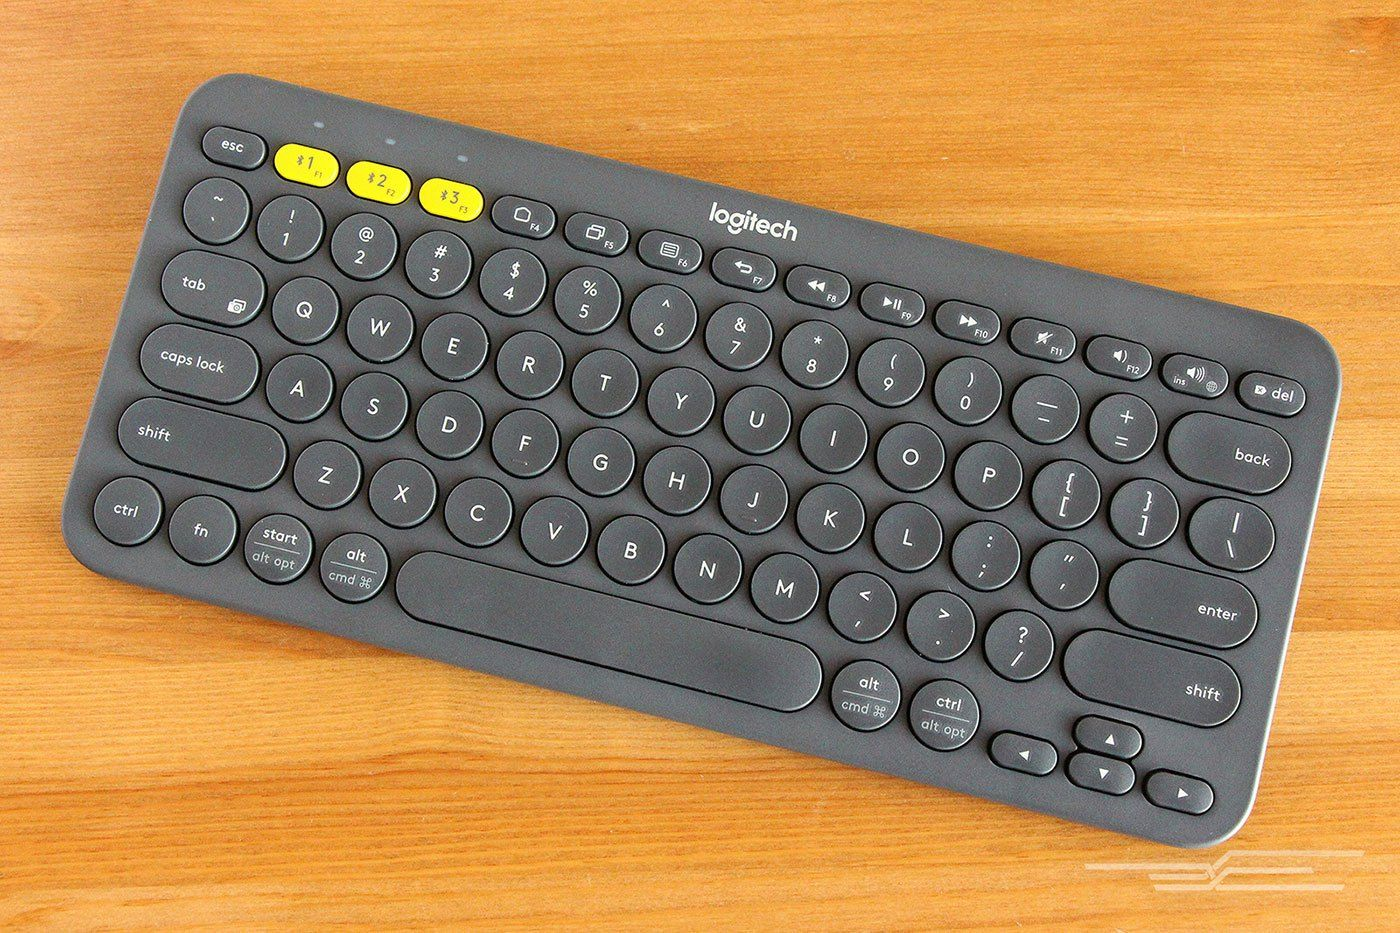 The best bluetooth keyboard - http://www.sogotechnews.com/2017/01/27/the-best-bluetooth-keyboard-2/?utm_source=Pinterest&utm_medium=autoshare&utm_campaign=SOGO+Tech+News